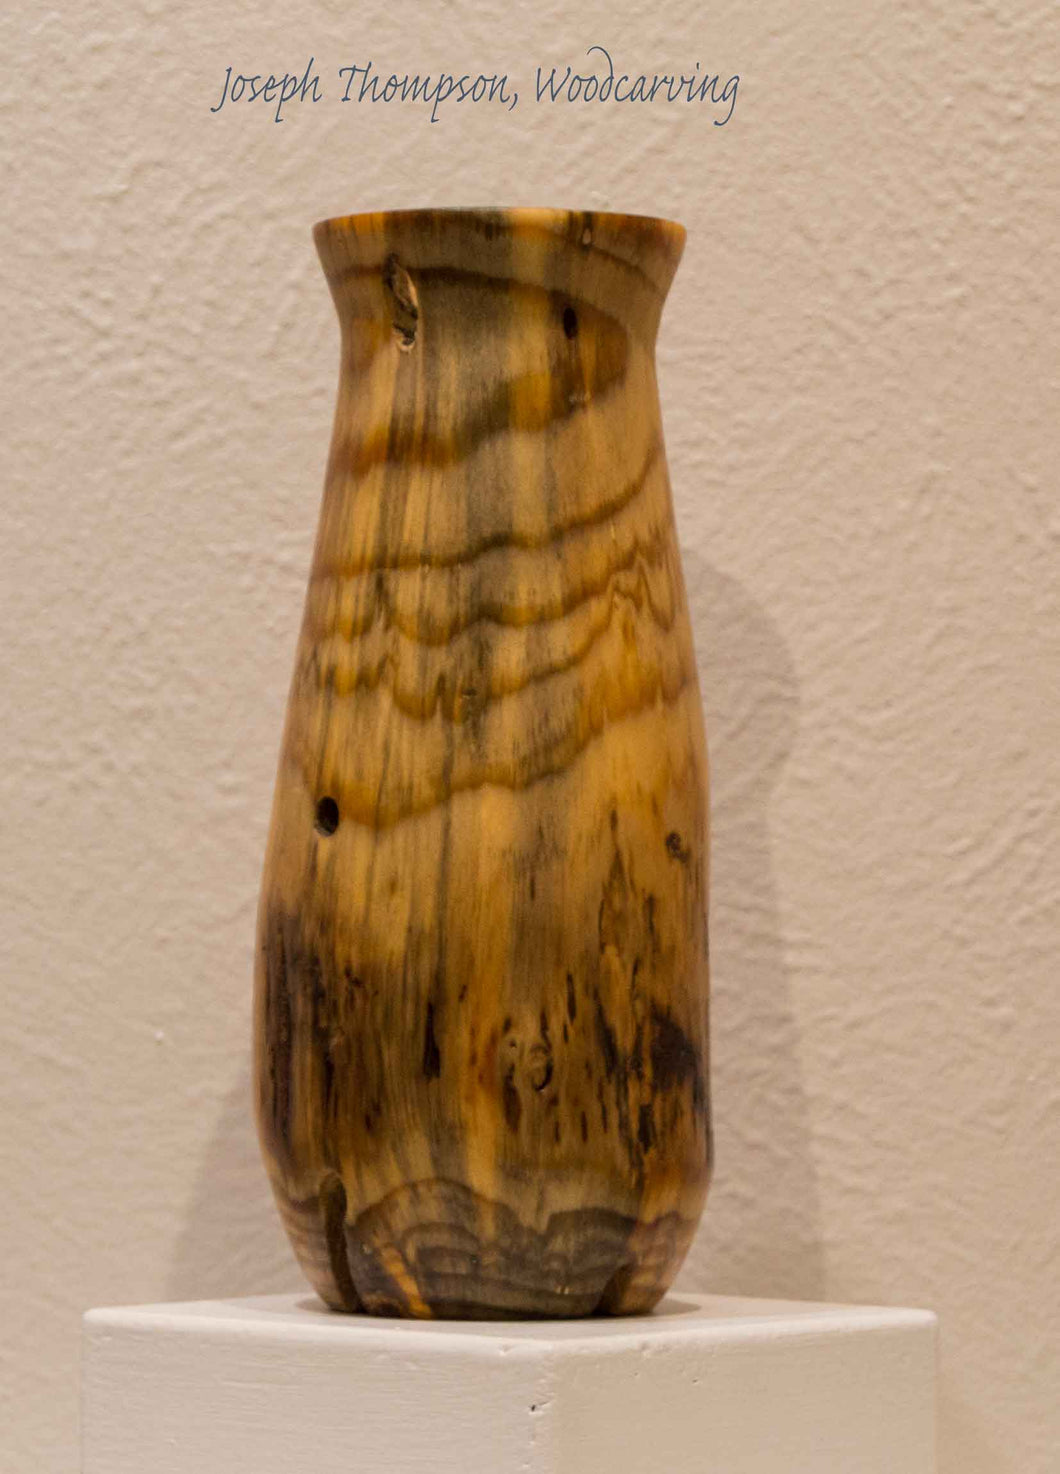 Pine Vase (44) Joseph Thompson, Woodcarving